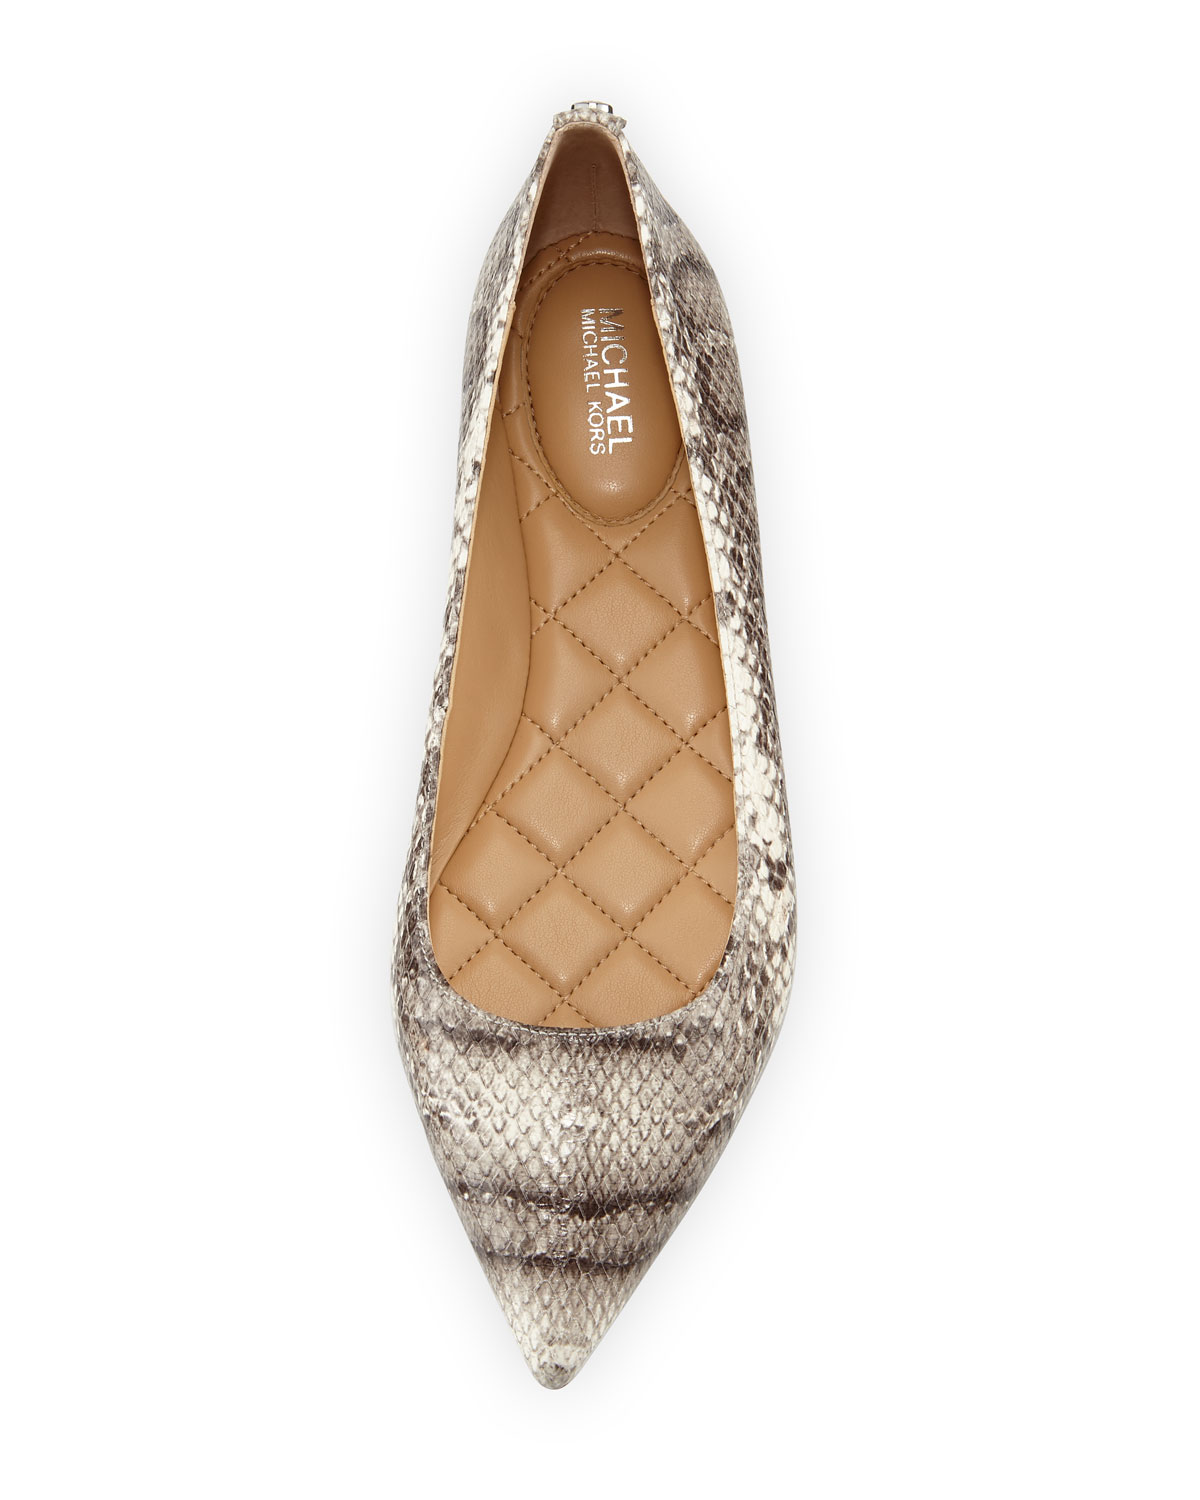 74186fa7d06 MICHAEL Michael Kors Arianna Snake-Embossed Pointed-Toe Flat ...